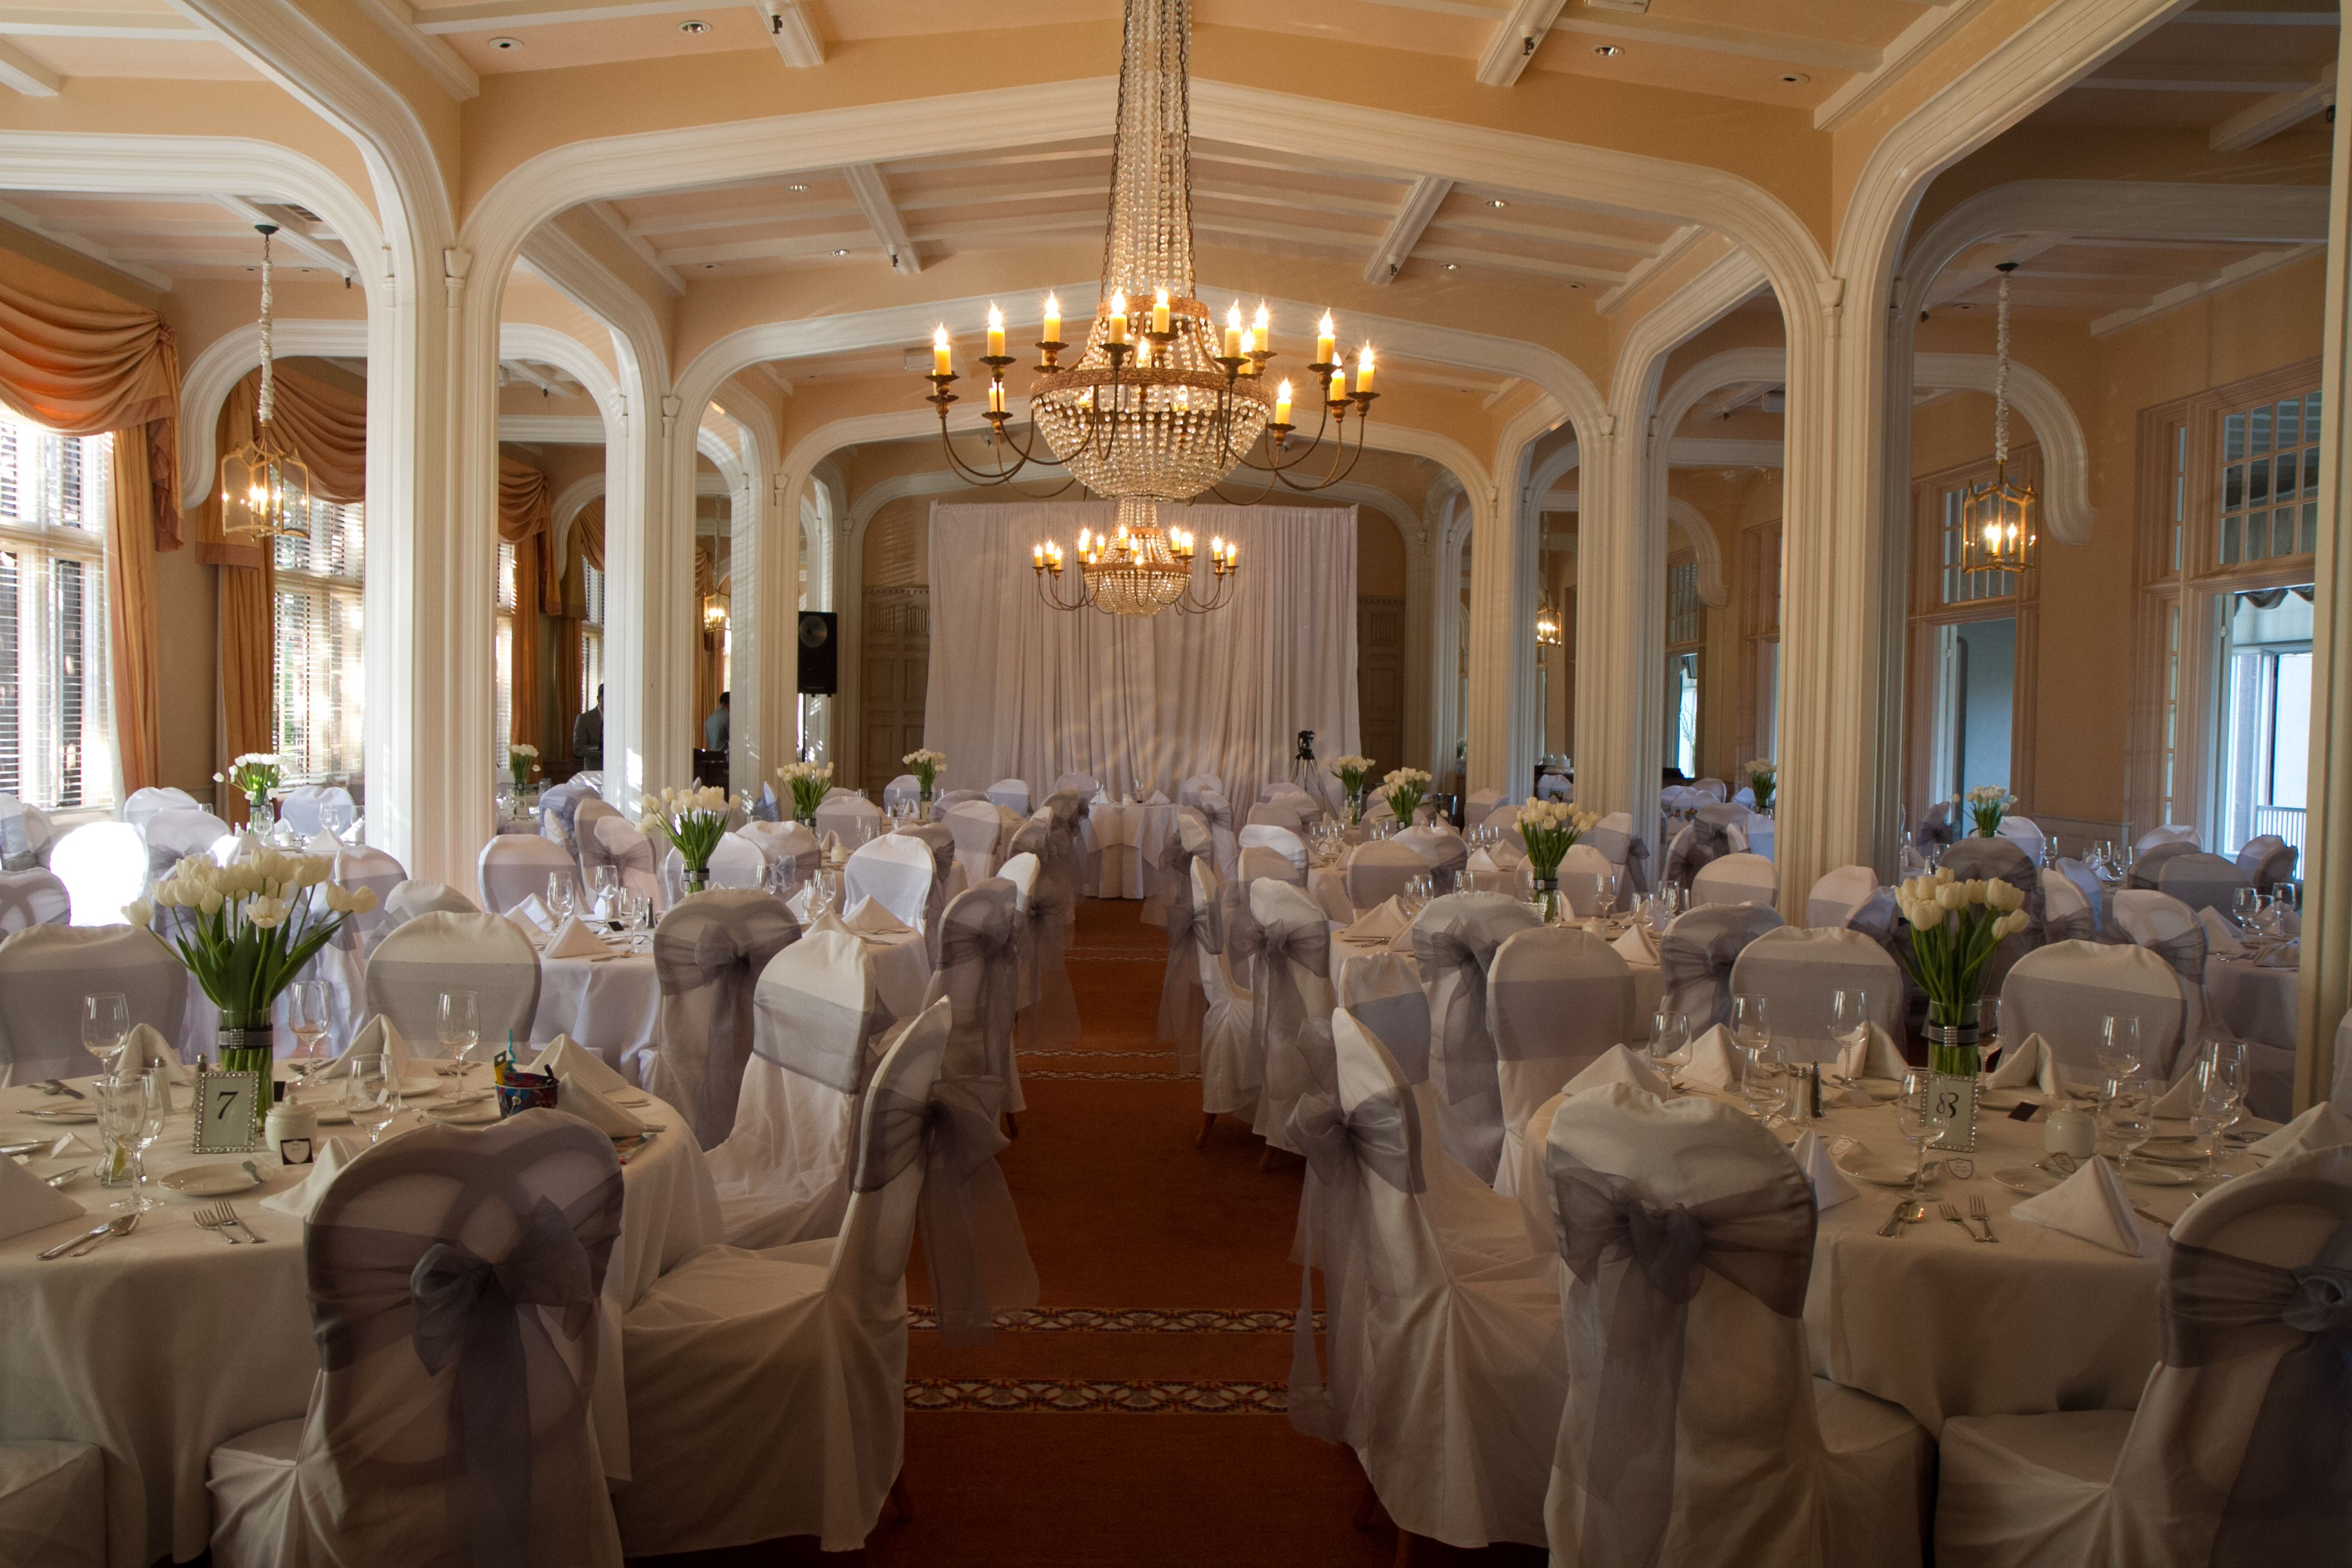 Reception - Main Dining Room | Wedding table, Table ...